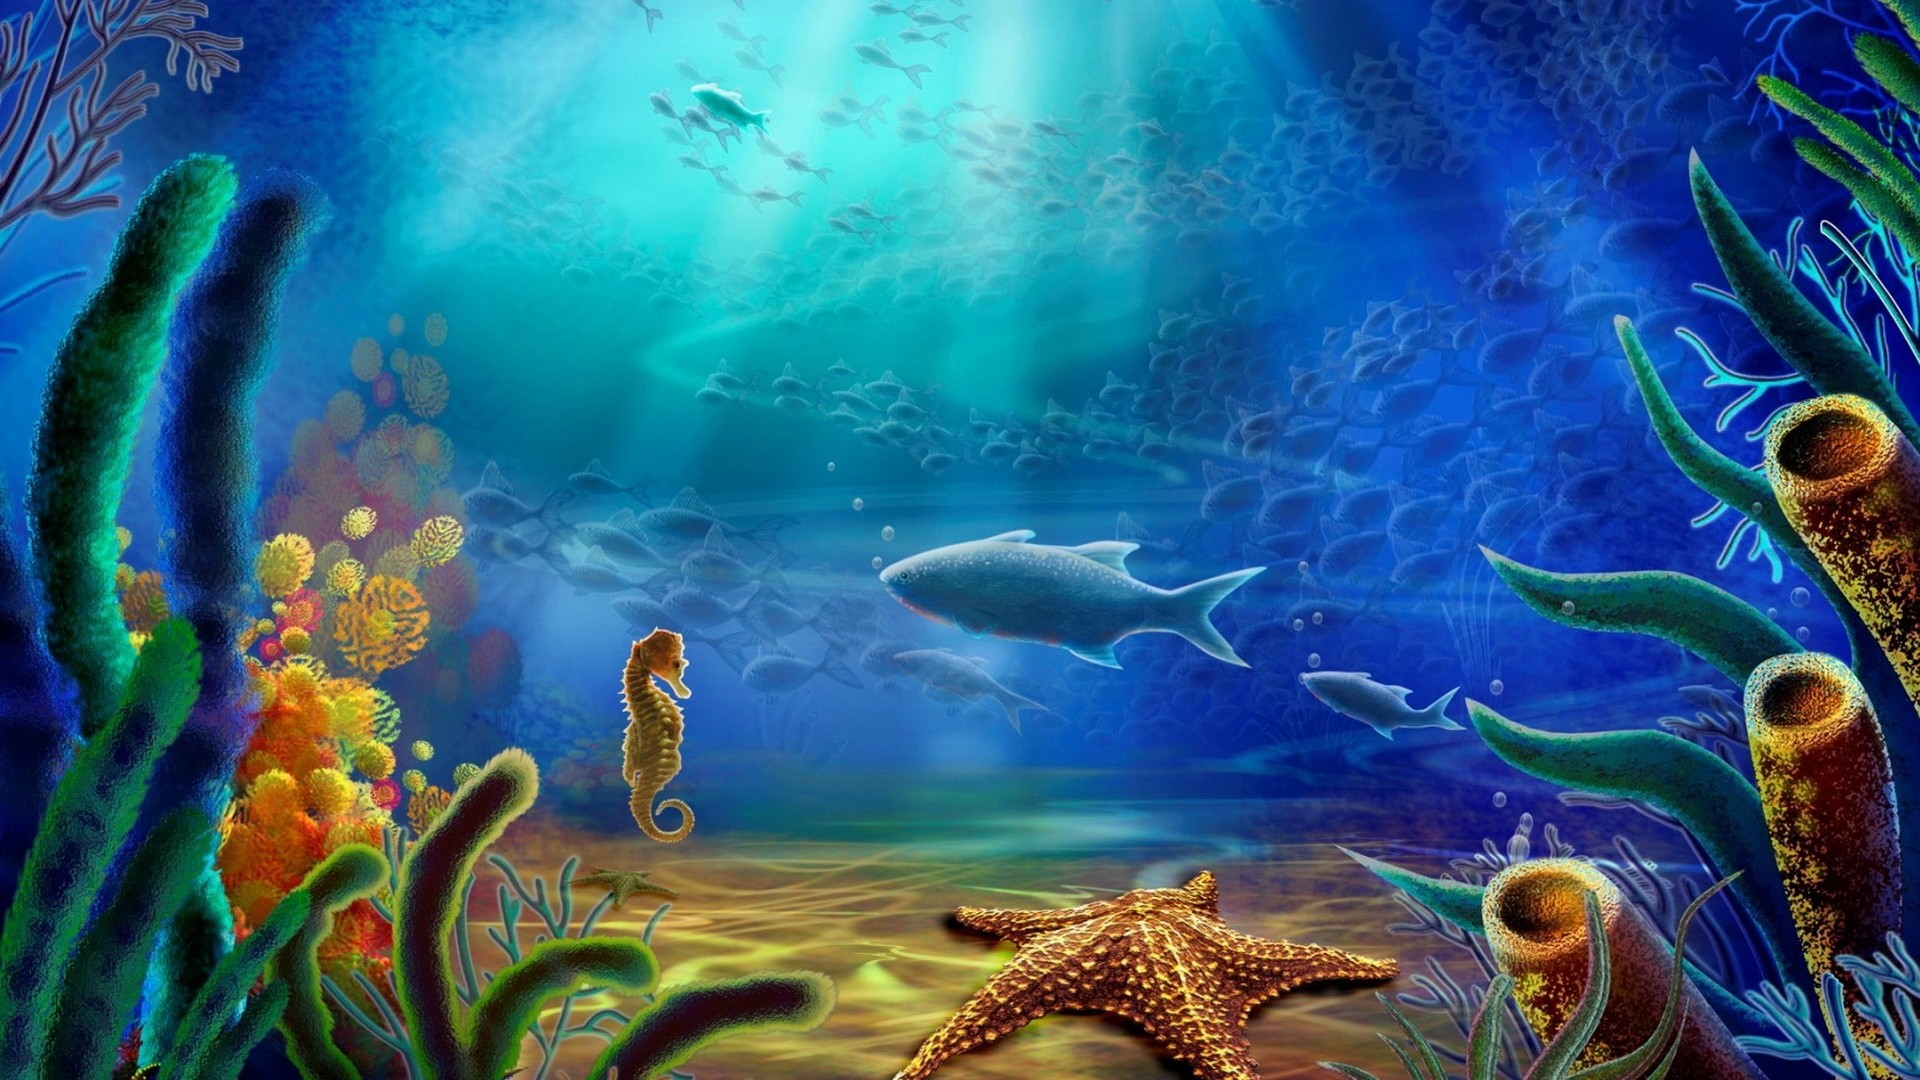 49 ] Free Animated Underwater Wallpaper On WallpaperSafari